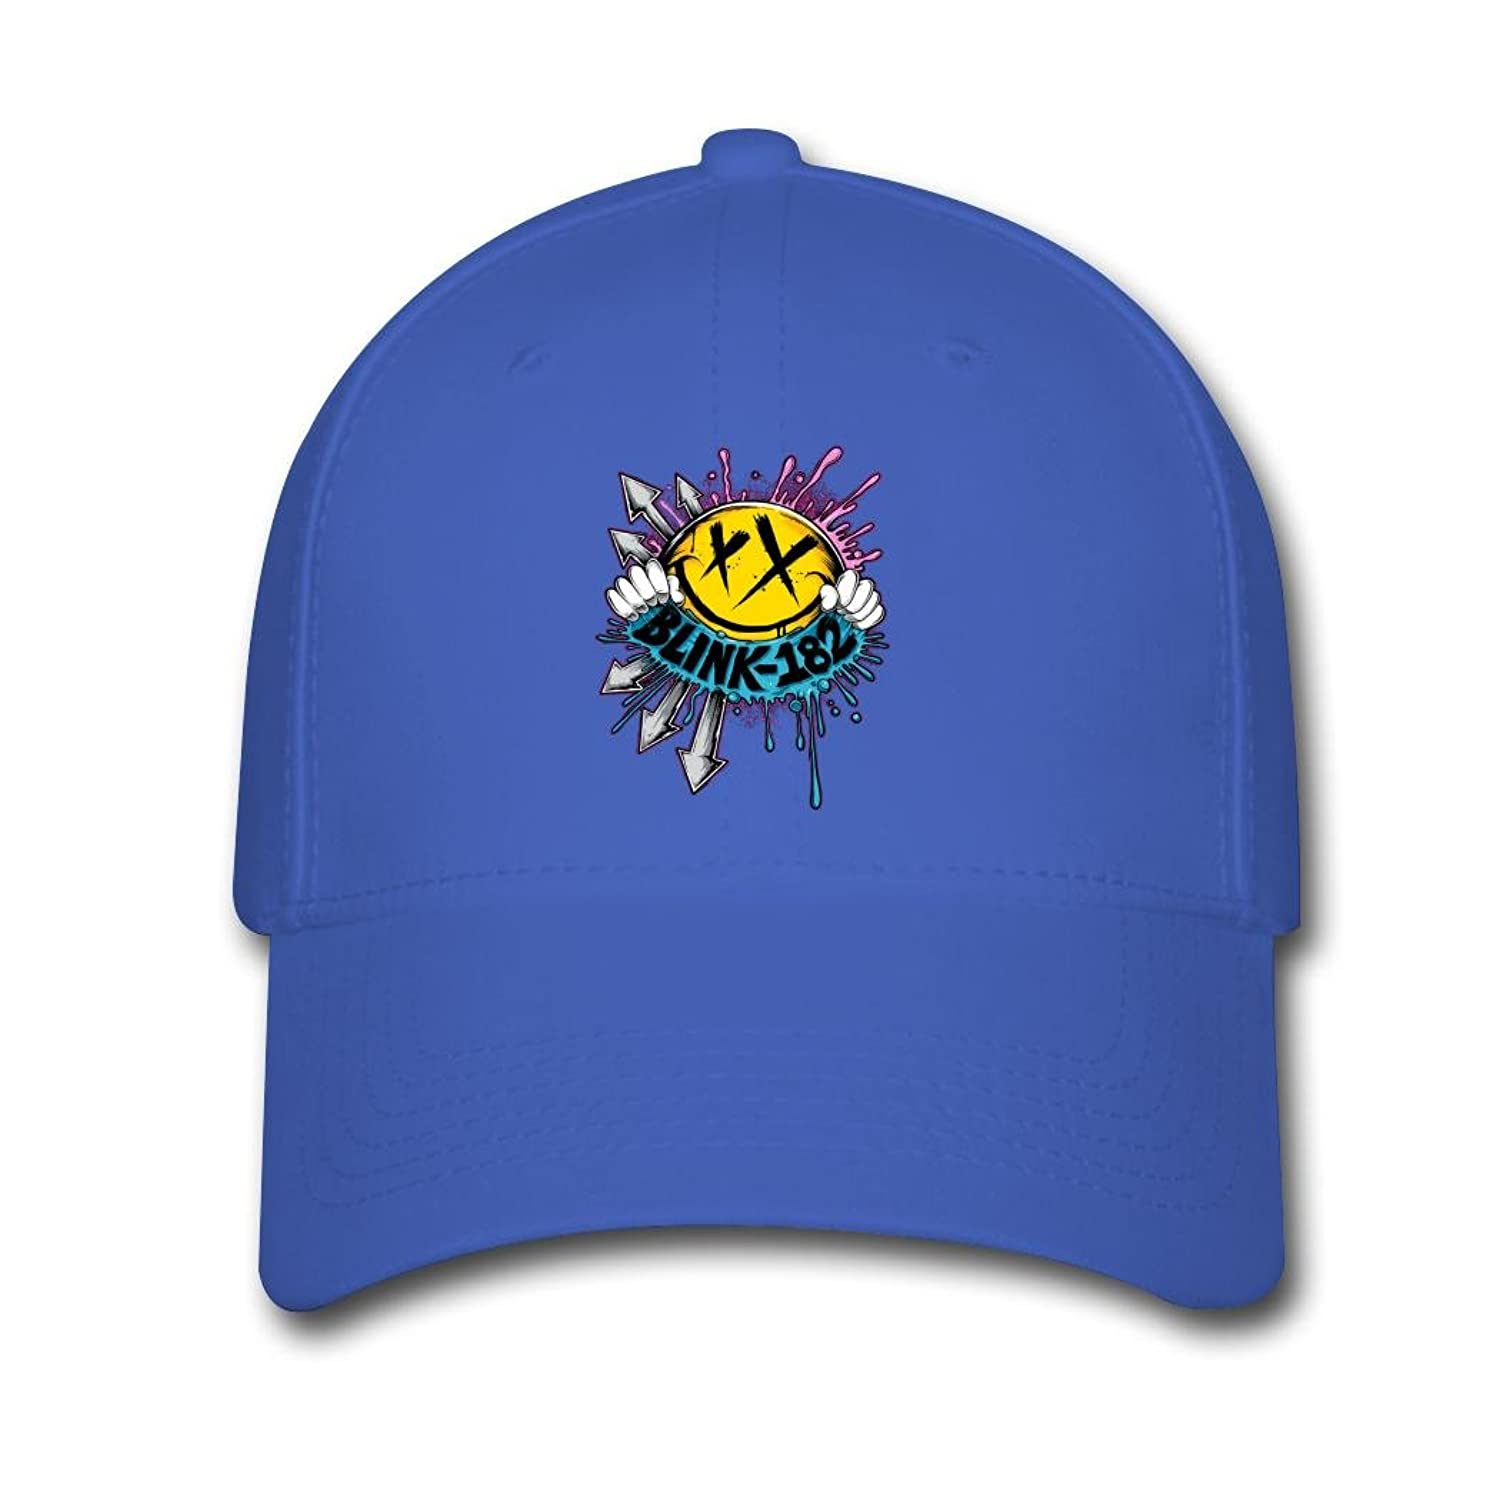 MUKIY Blink 182 With Both Hands Design Baseball Caps adjustable hats